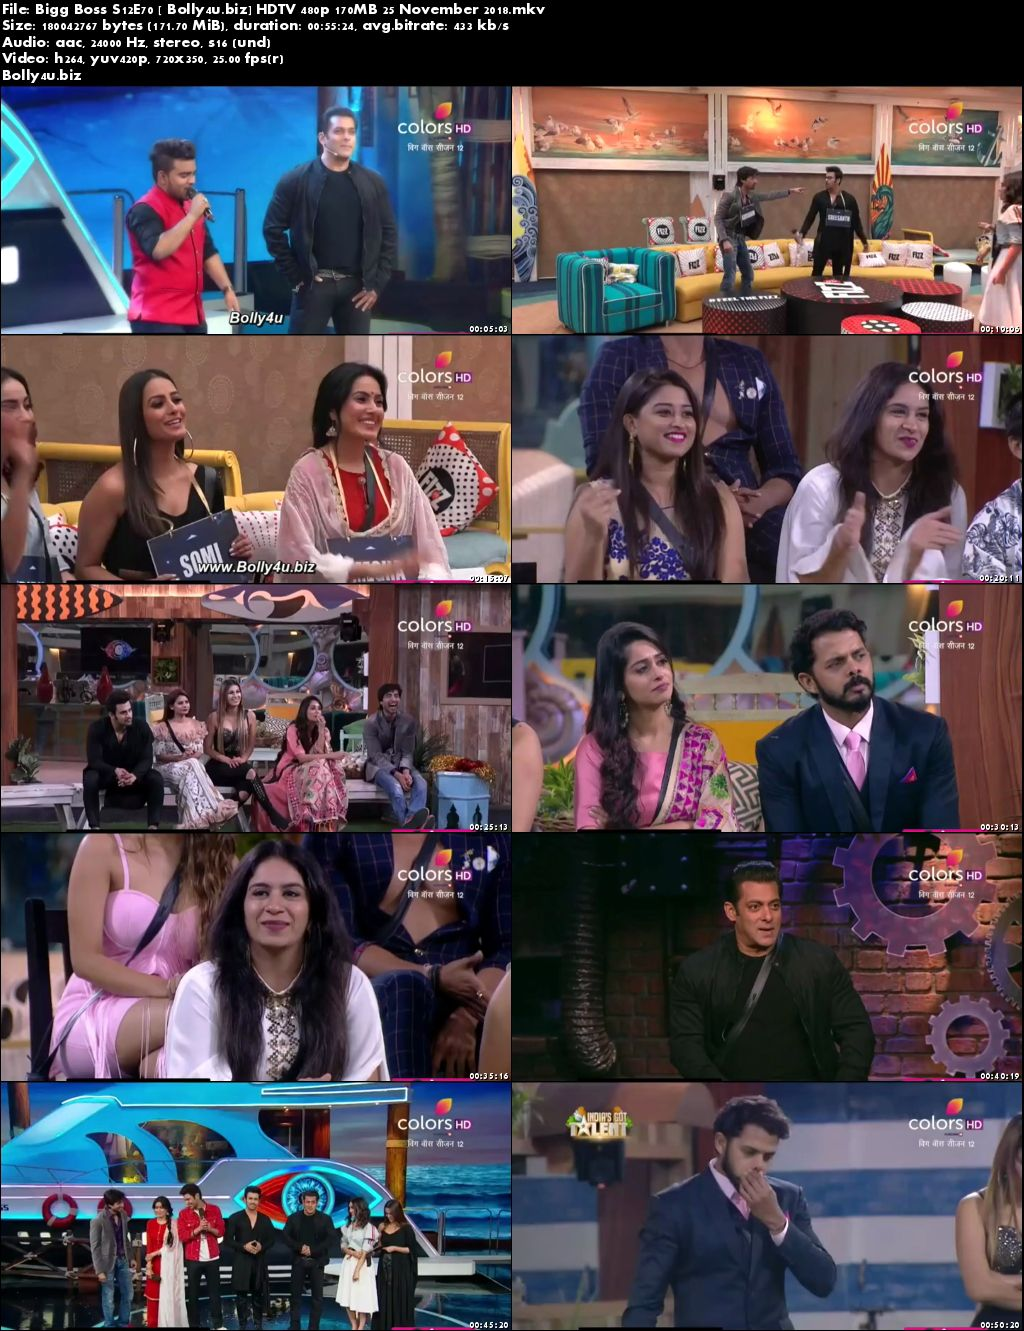 Bigg Boss S12E70 HDTV 480p 170MB 25 November 2018 Download